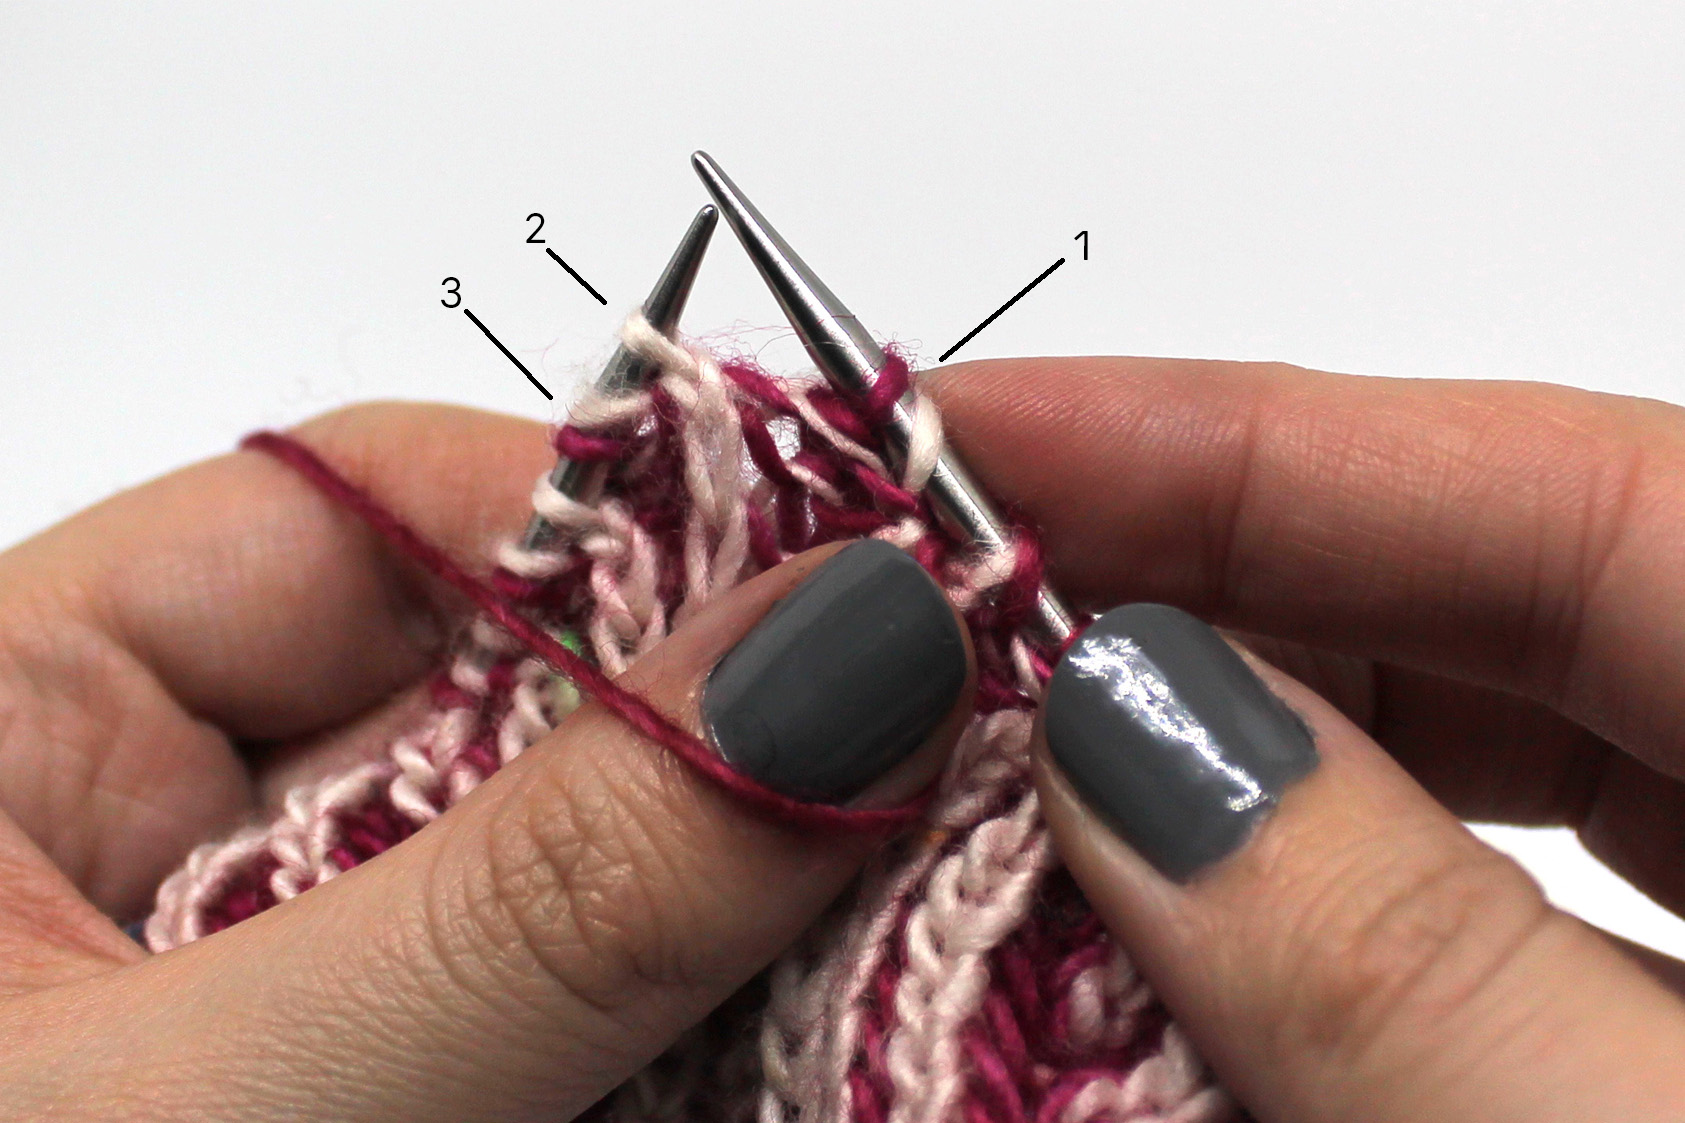 Three stitches labelled 1 - 3. Stitch 1 and the associated yarn over have been slipped to the right hand needle. Stitches 2 and 3 remain on the left hand needle.